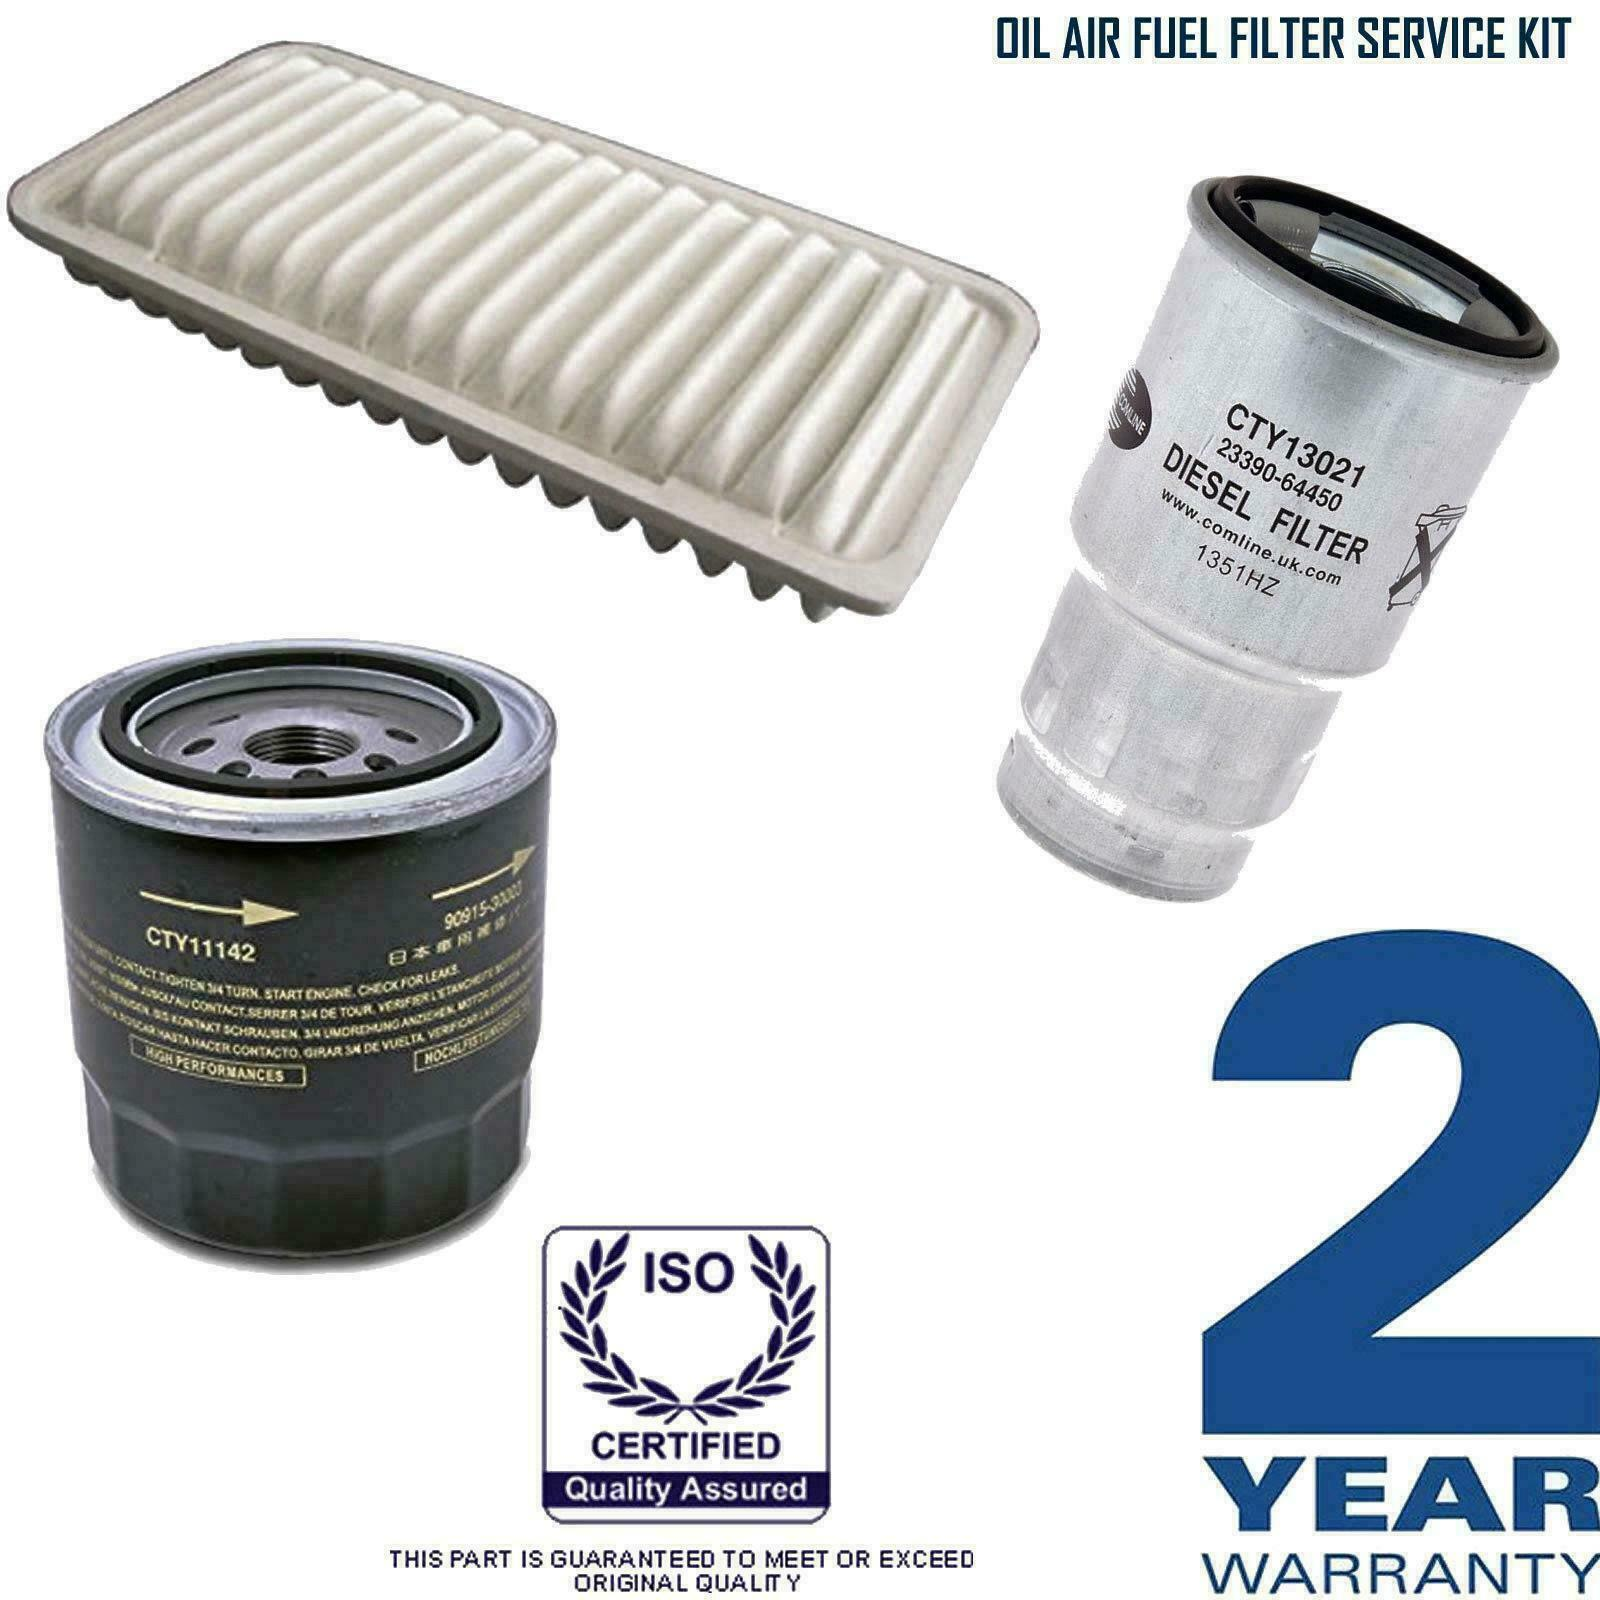 Toyota Corolla Verso 20 D4d T Spirit Oil Air Fuel Filter Location 1 Of 1free Shipping